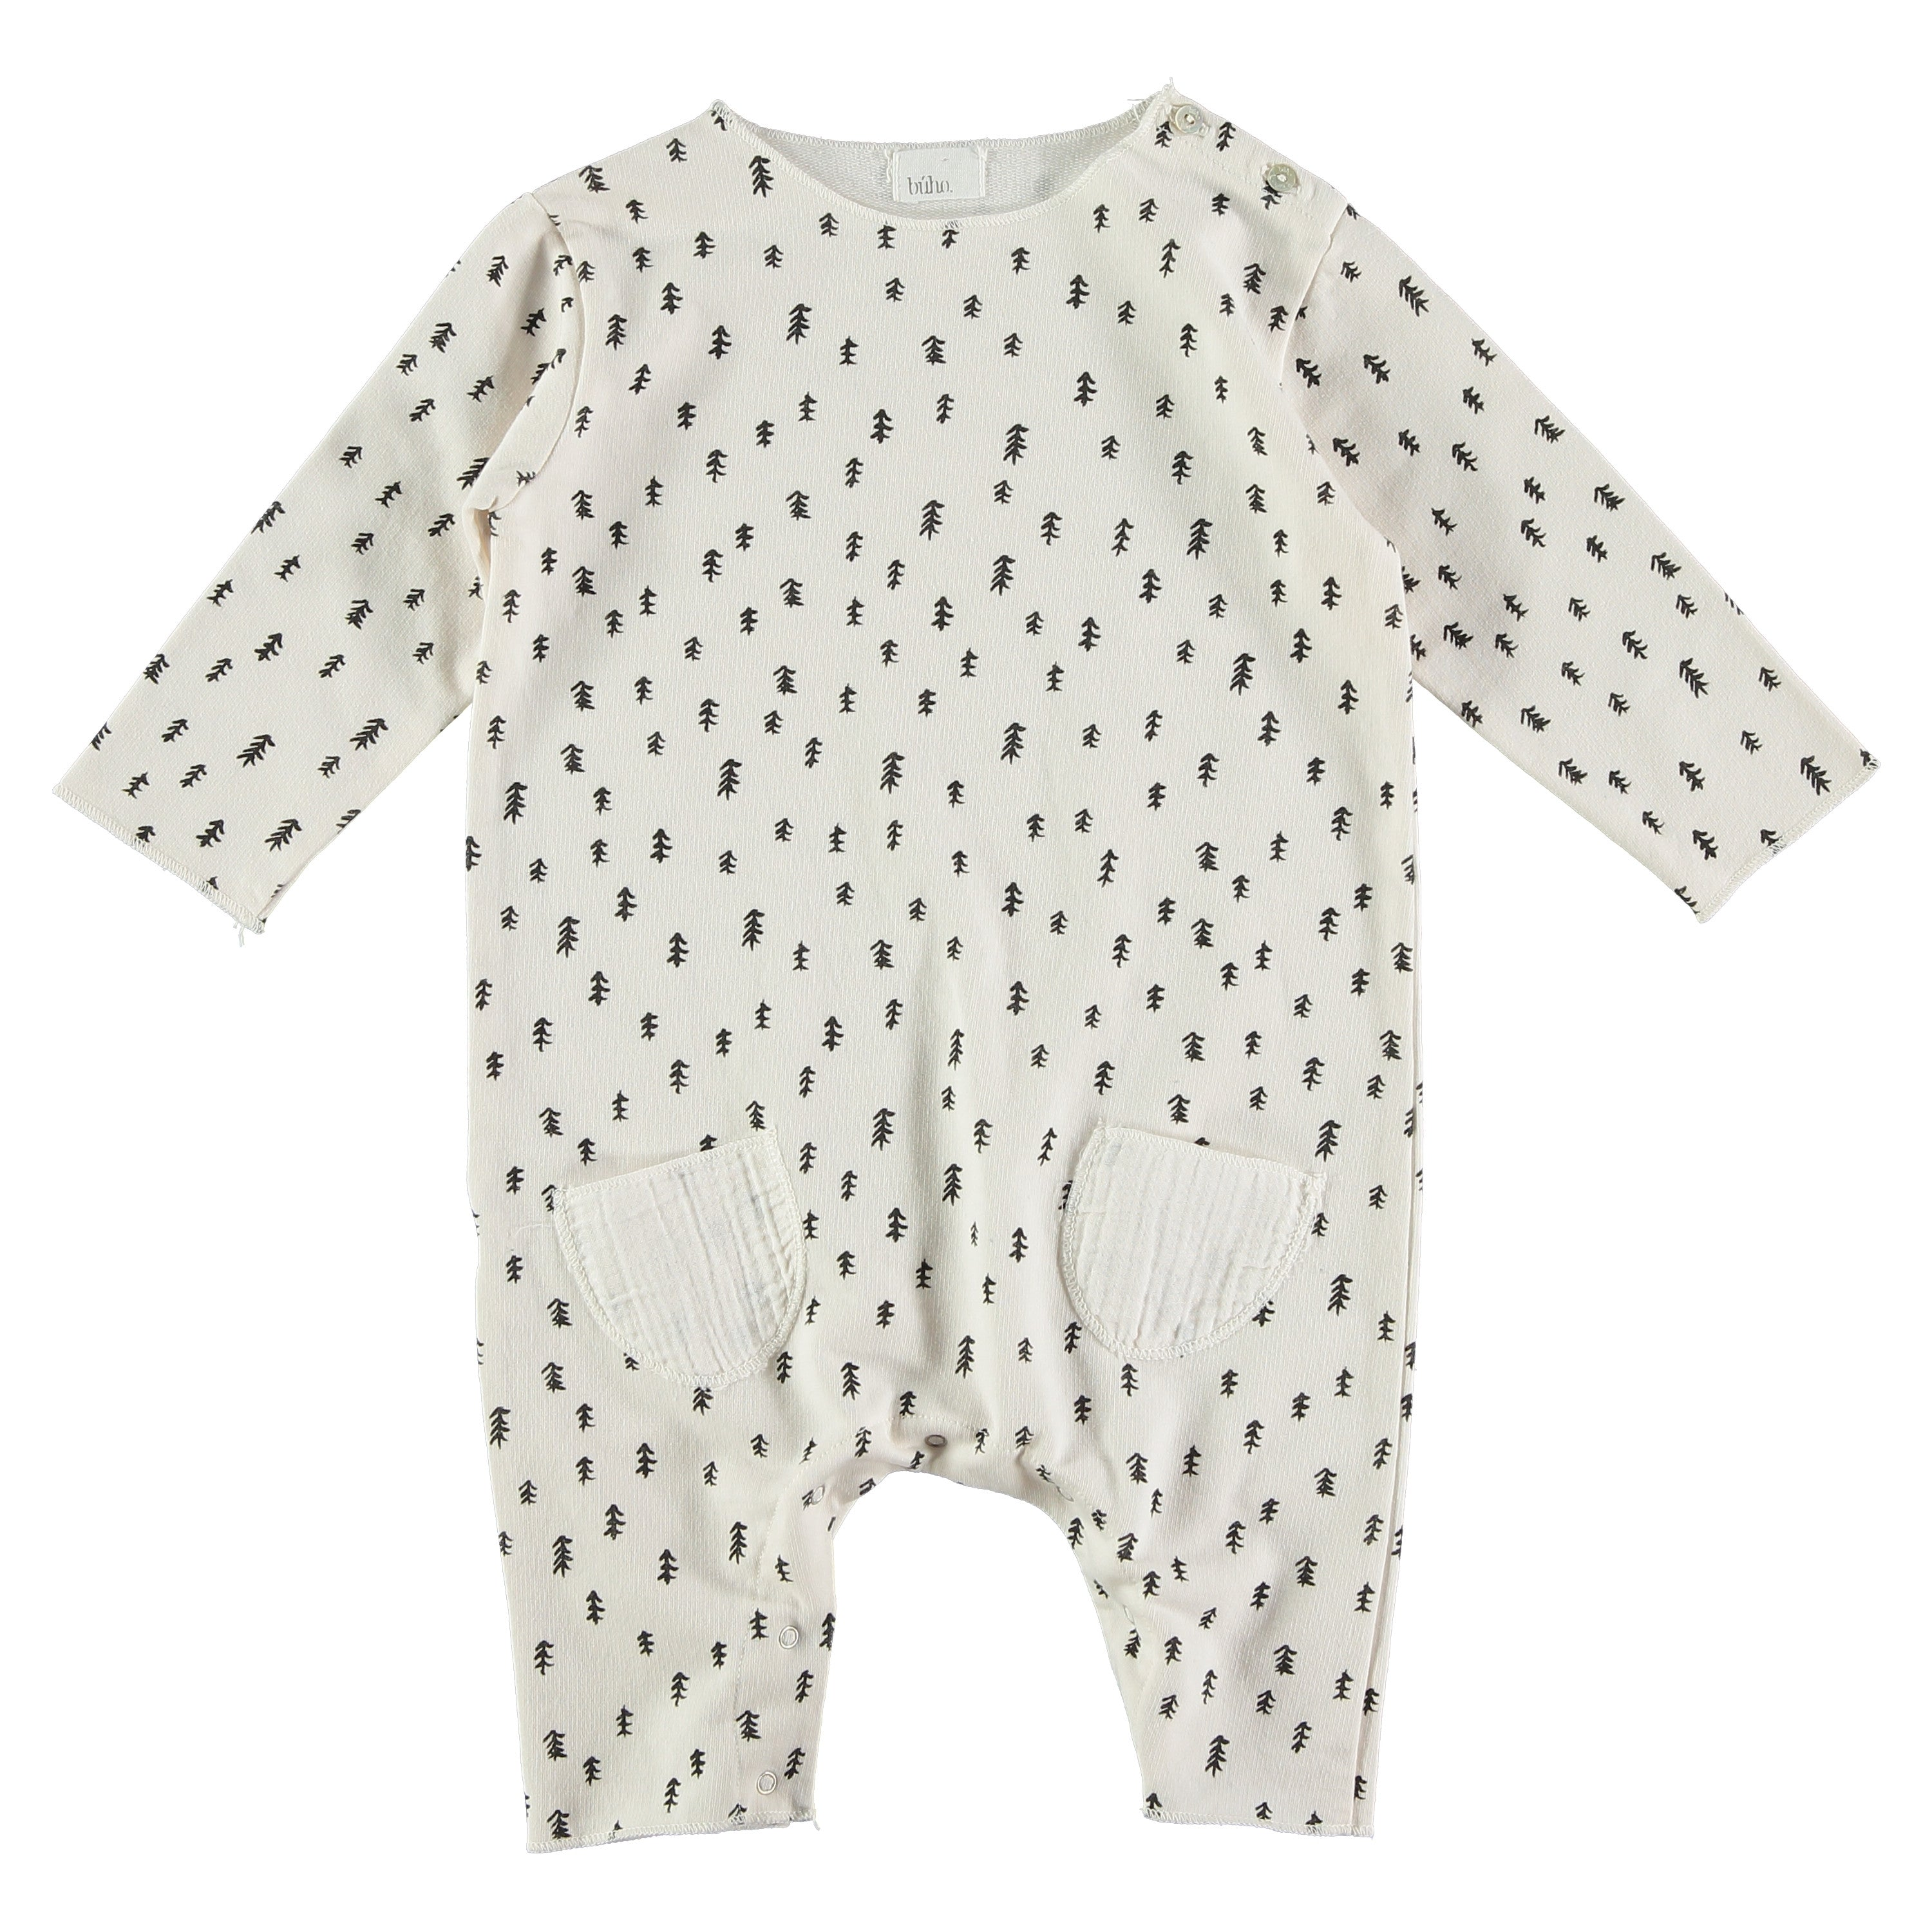 Buho Barcelona baby Jumpsuit at Bonjour Baby Baskets